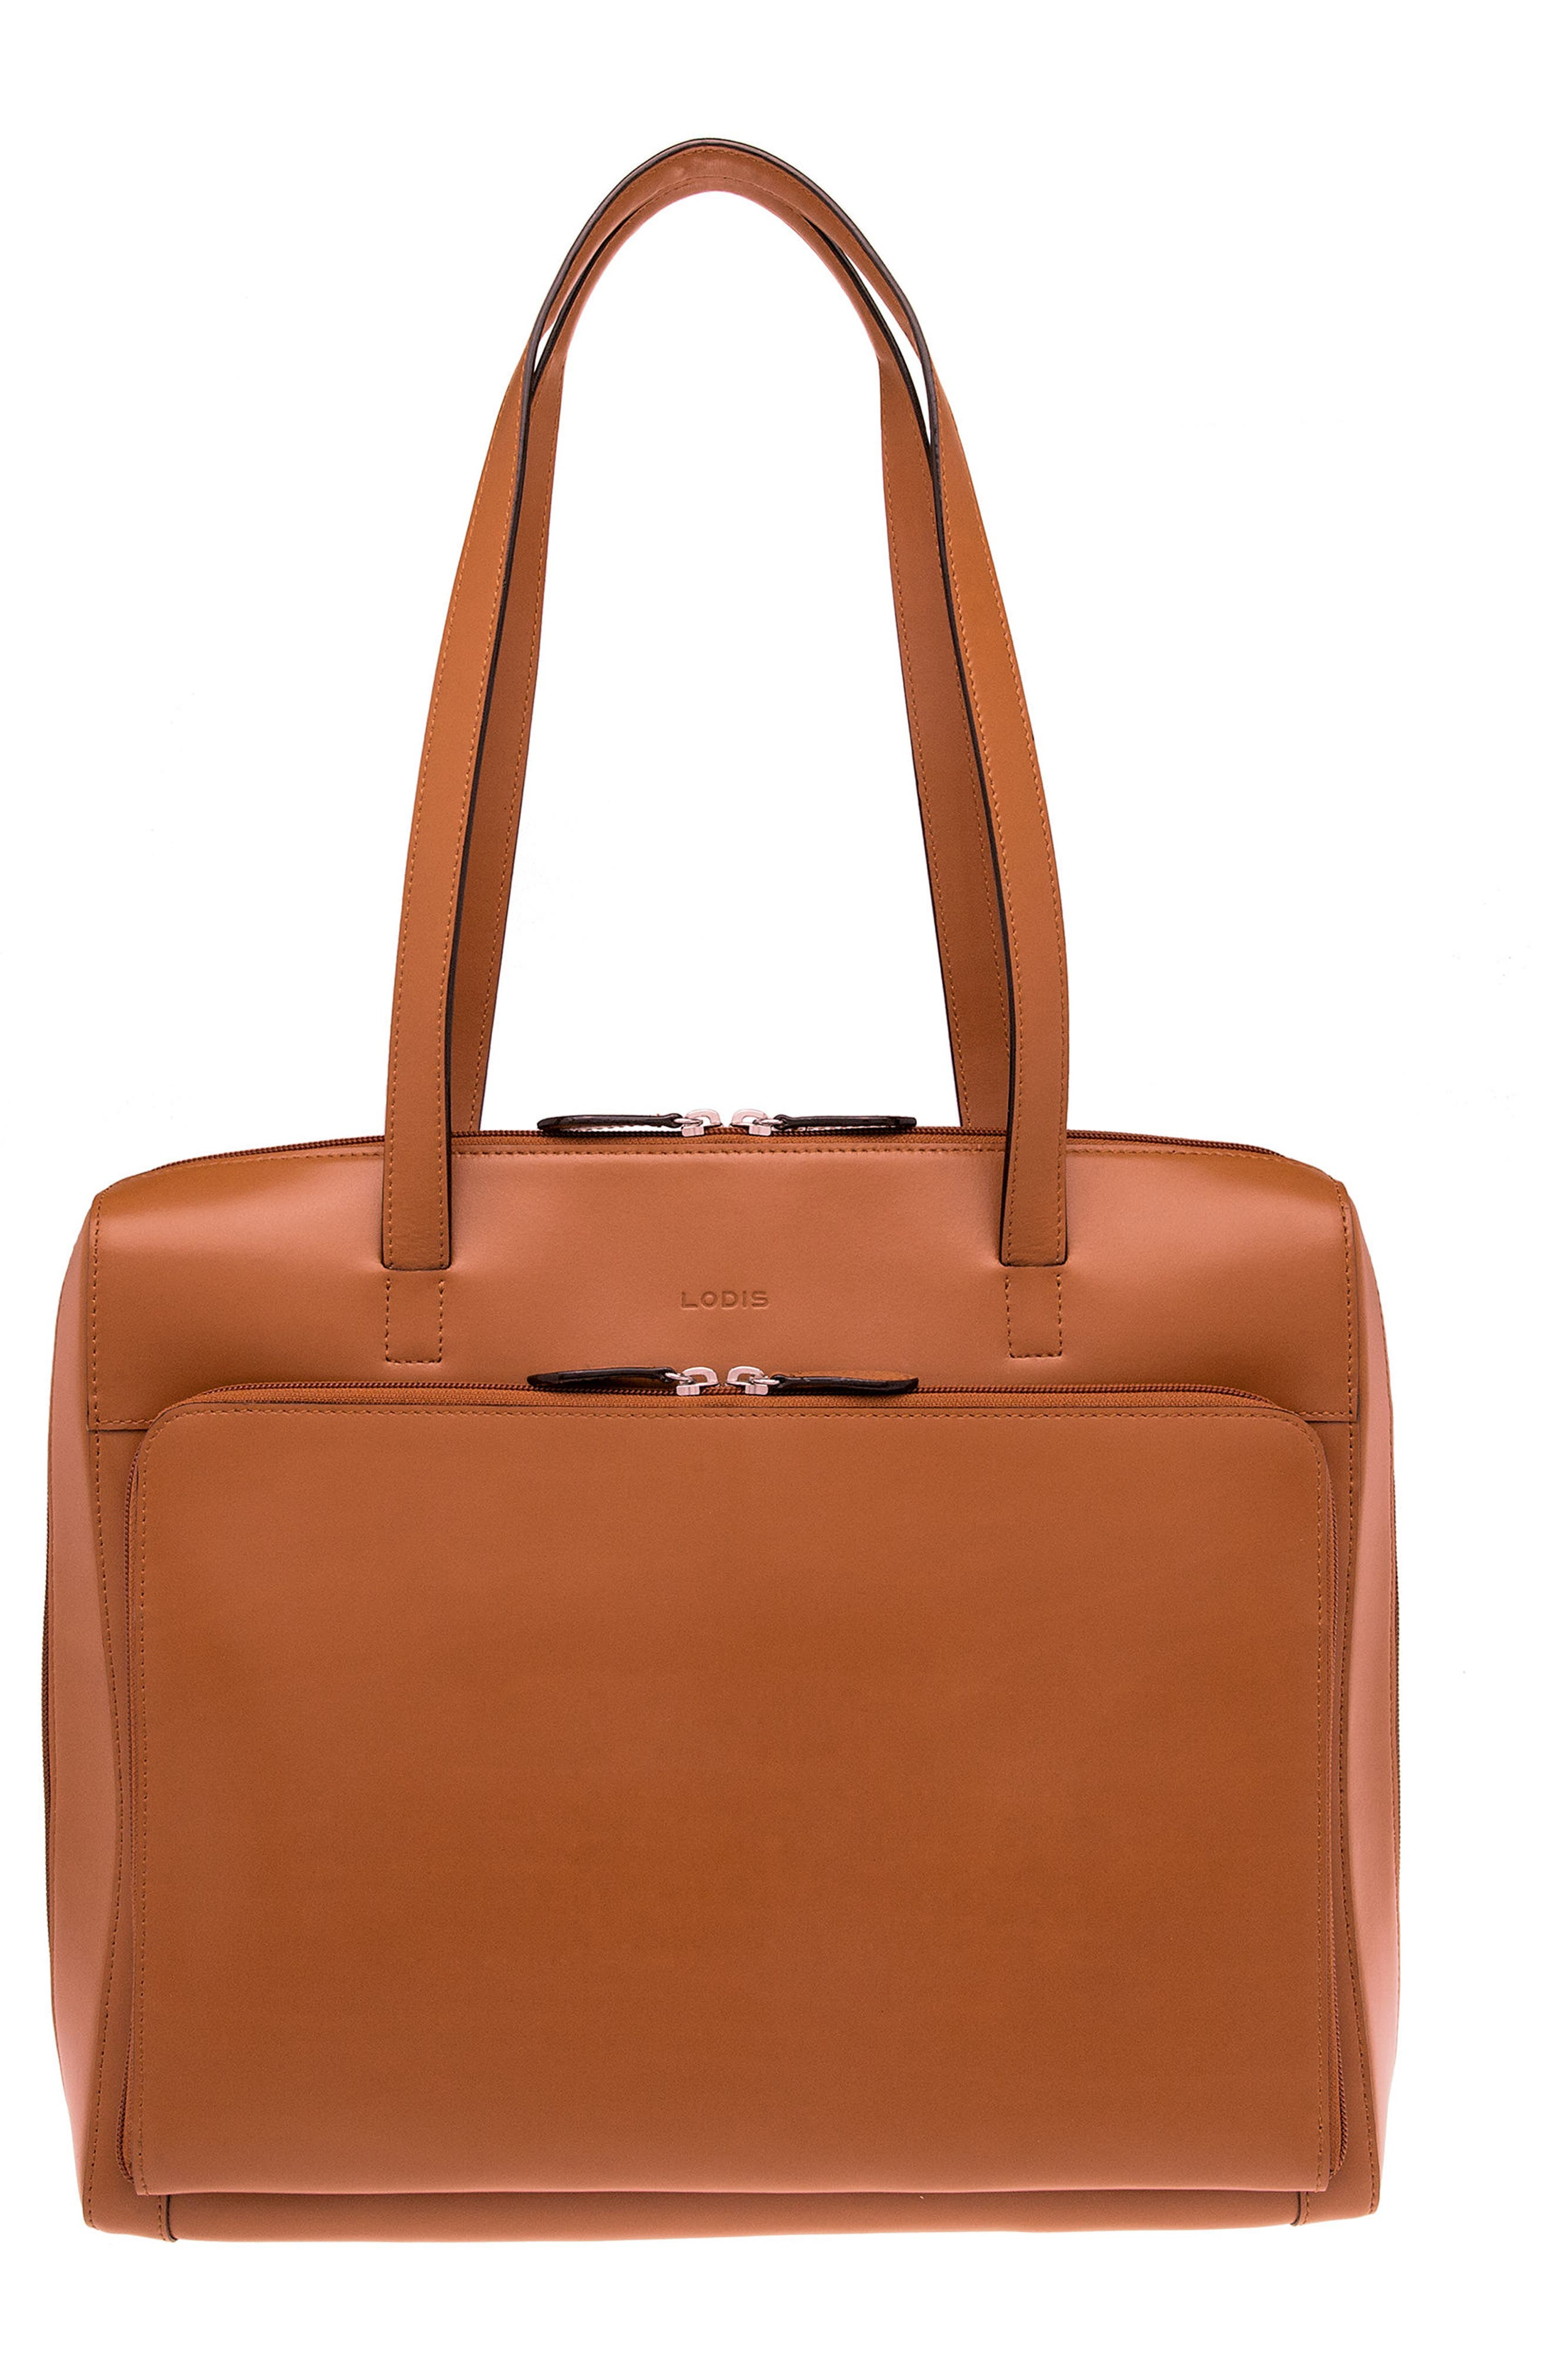 Audrey Under Lock & Key Organizer Tote,                             Alternate thumbnail 2, color,                             TOFFEE